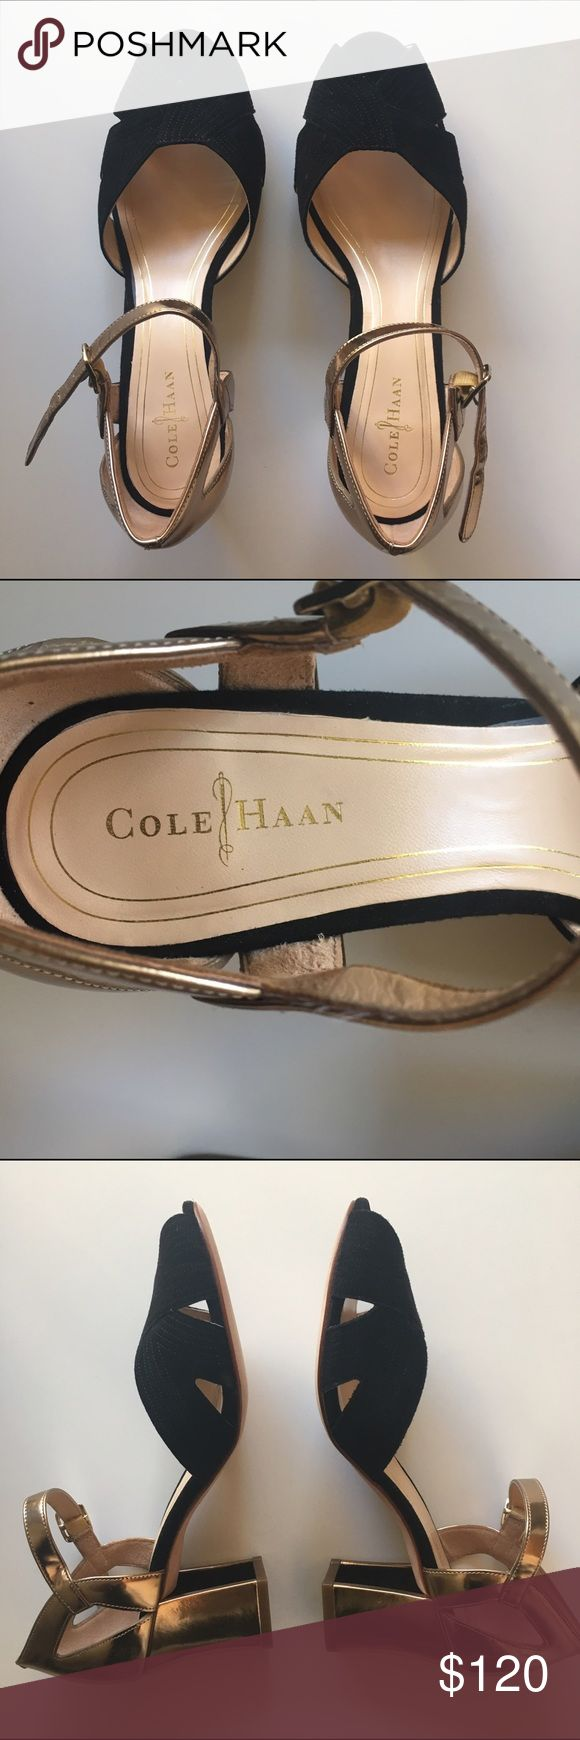 Cole Haan Gold and Suede Shoes Never wore them but there is a slight smudge on the inside on the left shoe, barely noticeable. Got them at the retail store, not the outlet.  Non-smoking, pet-free house. Cole Haan Shoes Heels